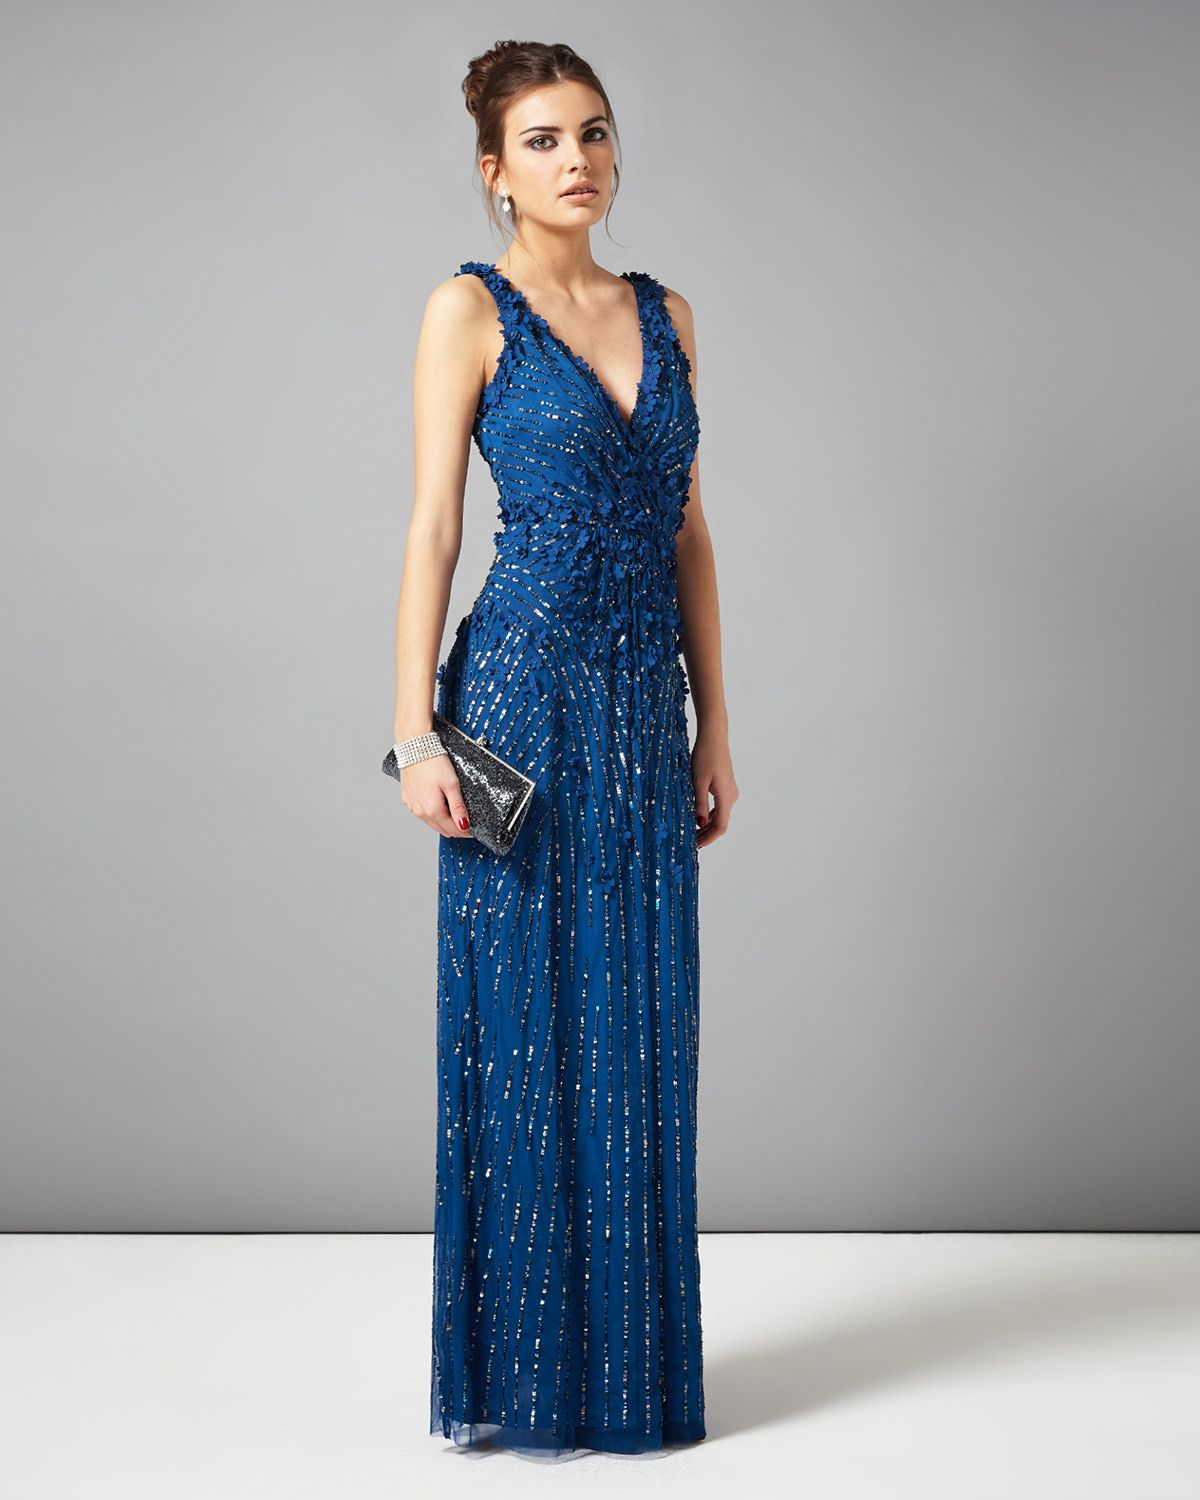 S style prom dresses formal dresses evening gowns dress